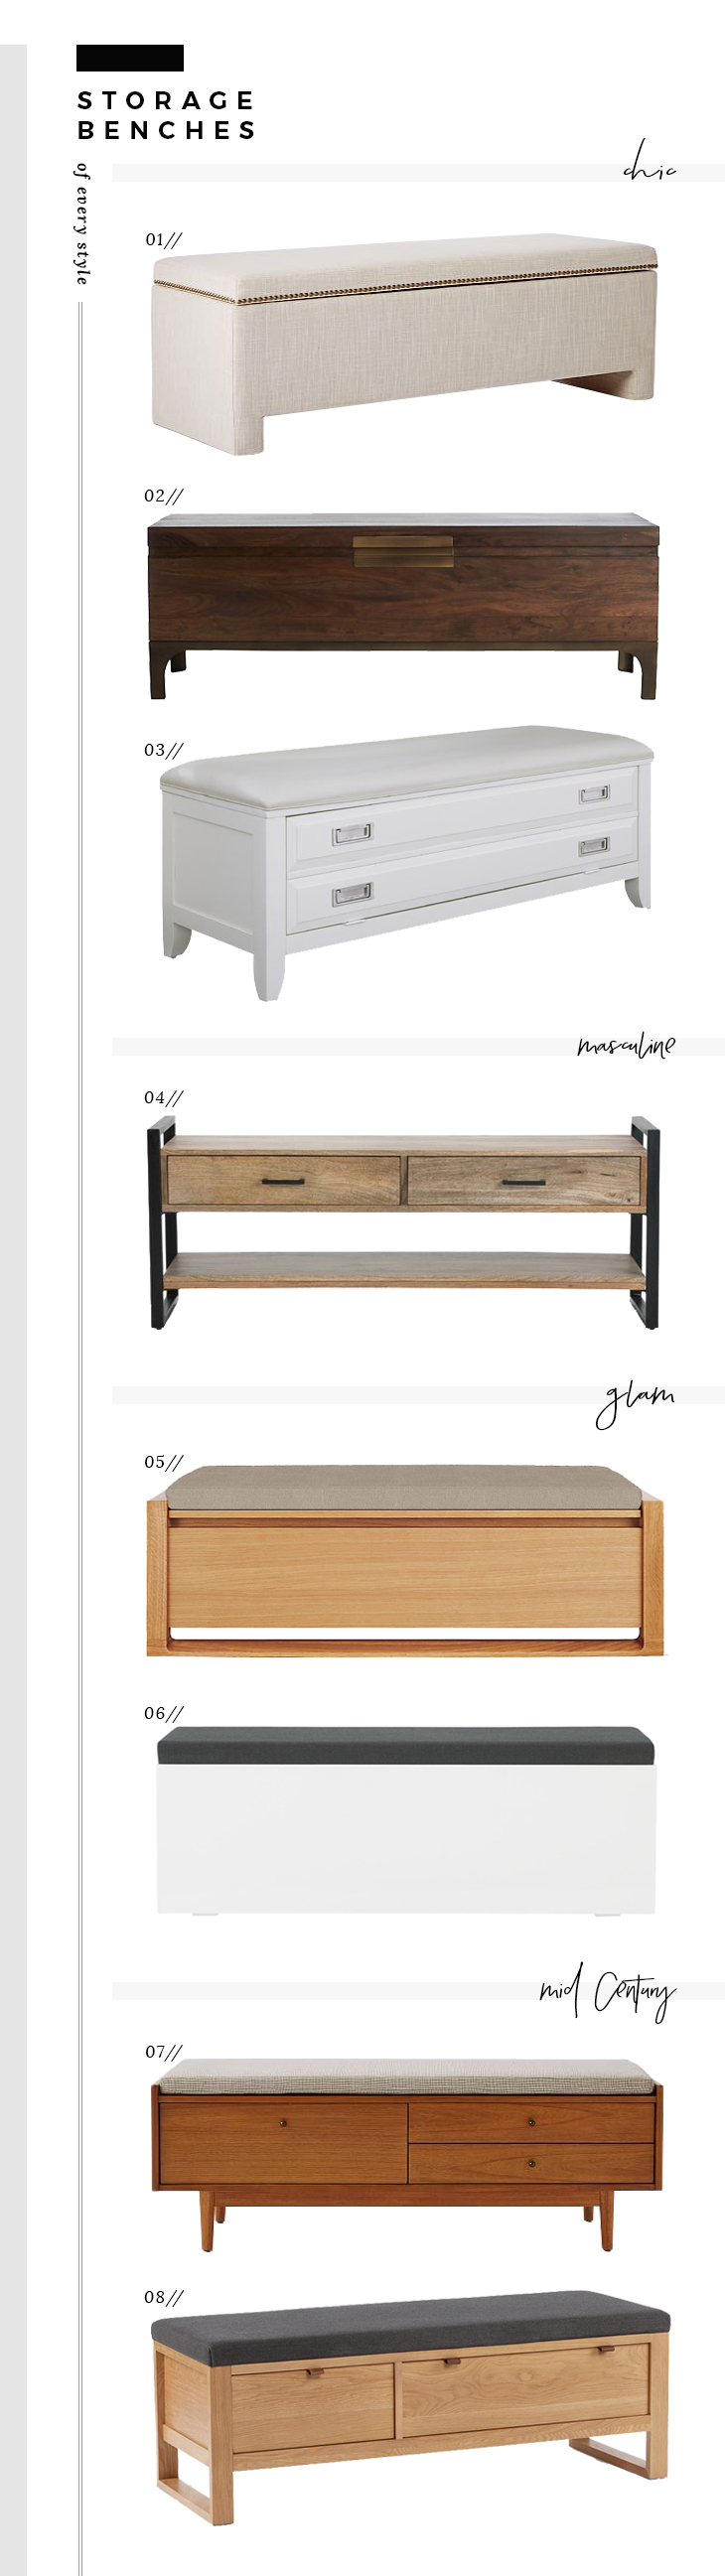 Budget Storage Banquette Bench Diy Room For Tuesday Blog